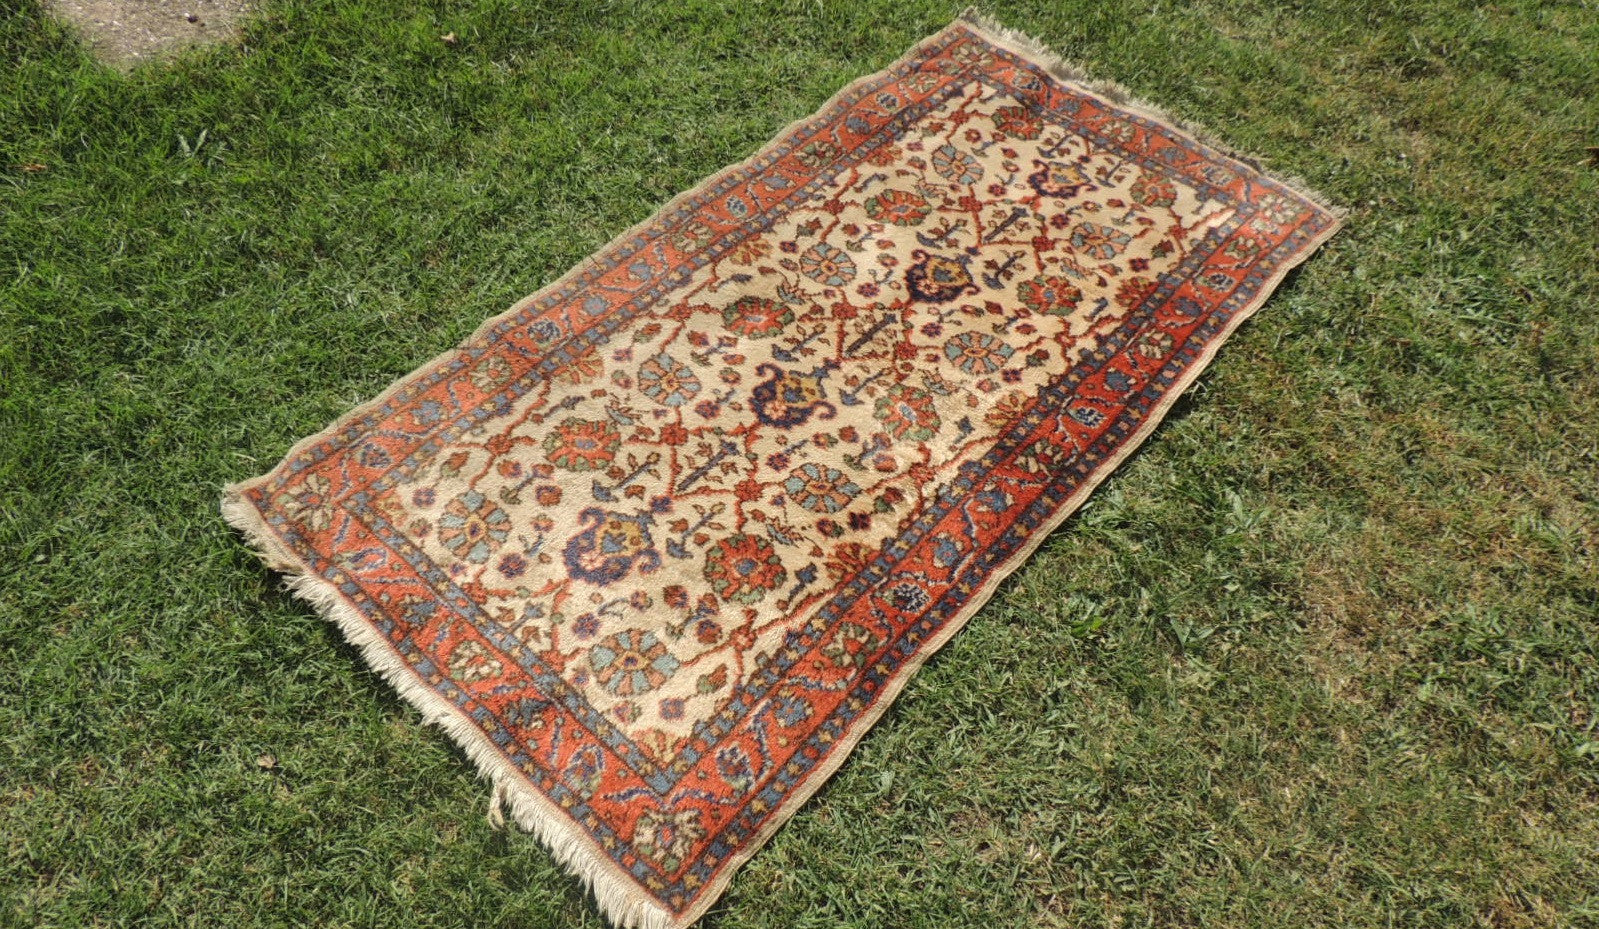 Floral Turkish Carpet with Oriental Design - bosphorusrugs  - 1